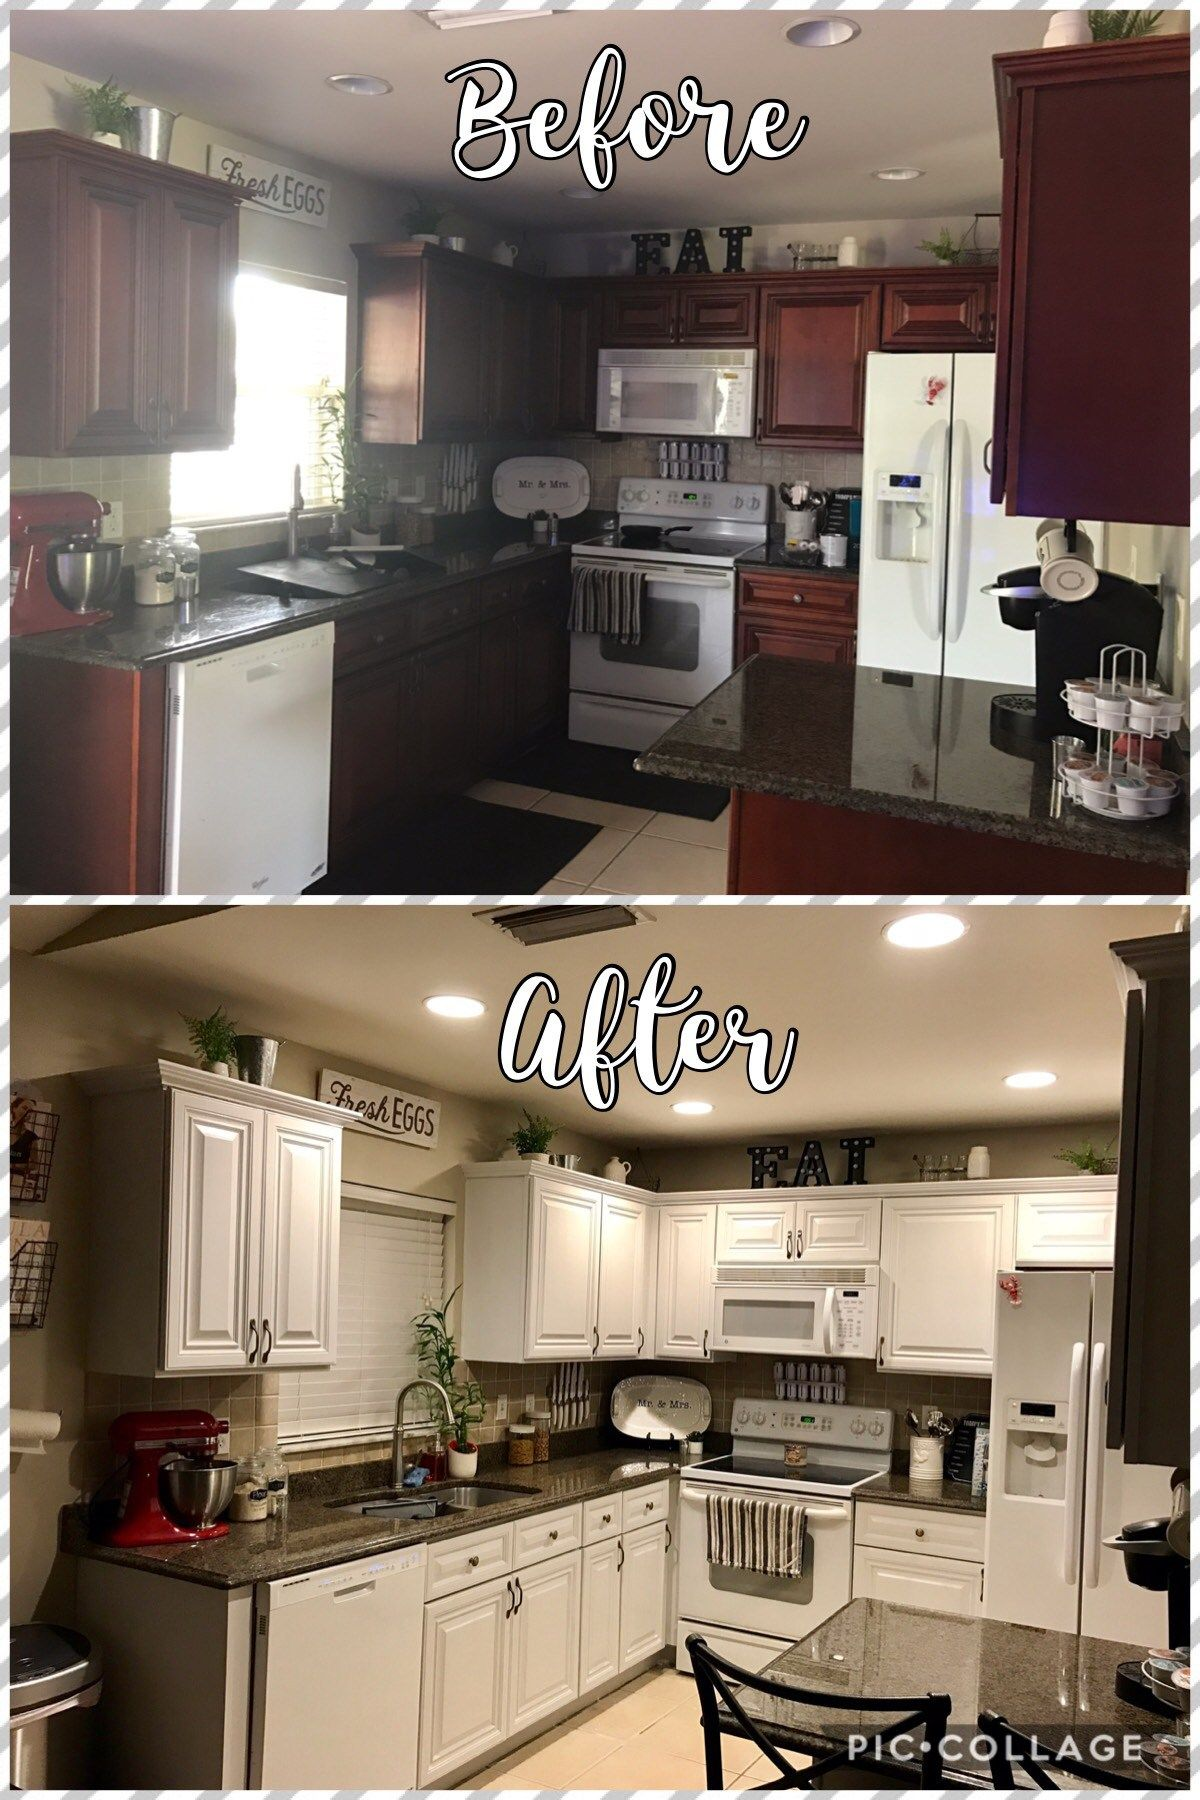 Learn The Best Diy Way To Paint Kitchen Cabinets With Chalk Paint Gorgeous Chalk Painting Kitchen Cabinets Design Decoration